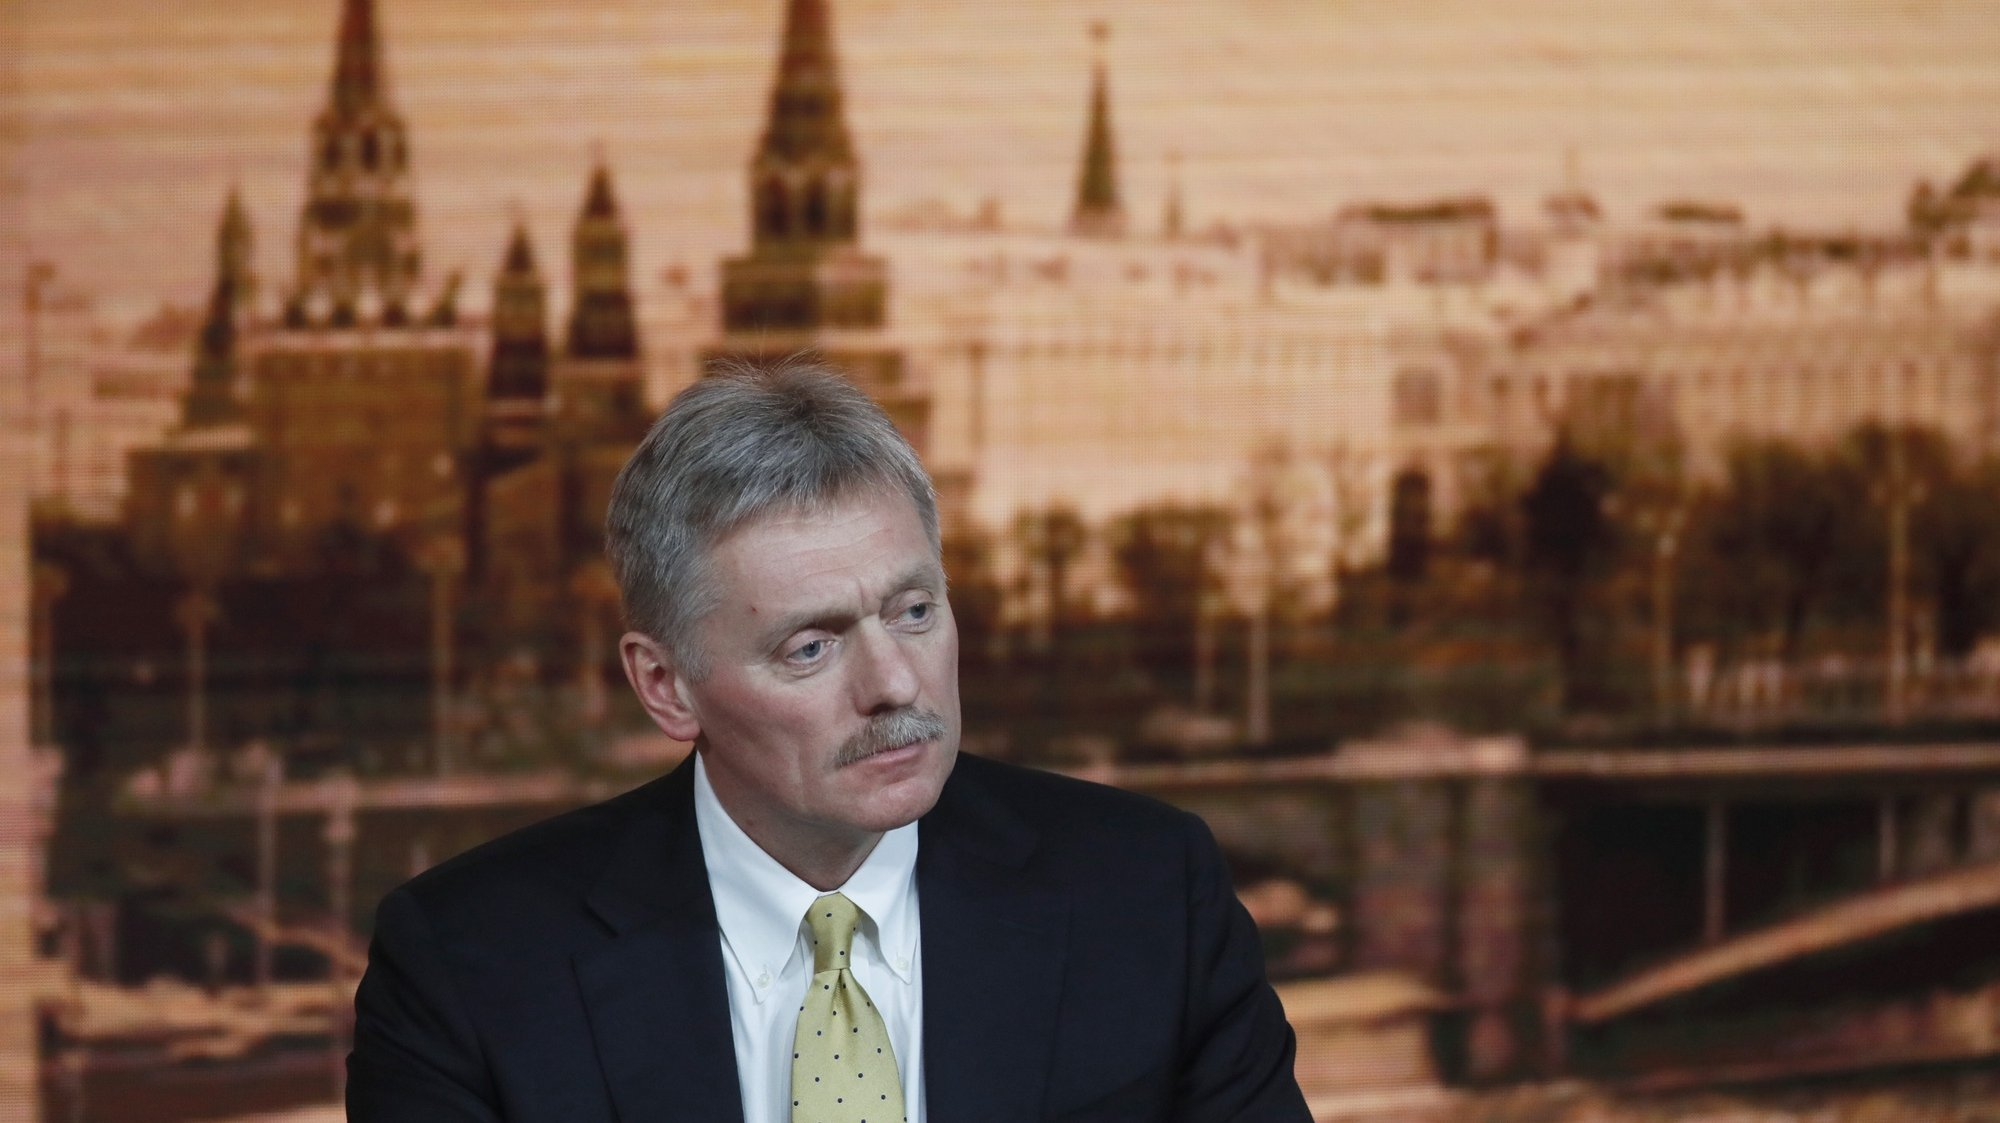 epa08416803 (FILE)  Kremlin spokesman Dmitry Peskov attends Russian President Vladimir Putin's annual life-broadcasted news conference with Russian and foreign media at the World Trade Center in Moscow, Russia, 19 December 2019 (reissued 12 May 2020). According to reports on 12 May, Kremlin spokesman Dmitry Peskov was hospitalised after testing positive for coronavirus COVID-19.  EPA/YURI KOCHETKOV *** Local Caption *** 55719978